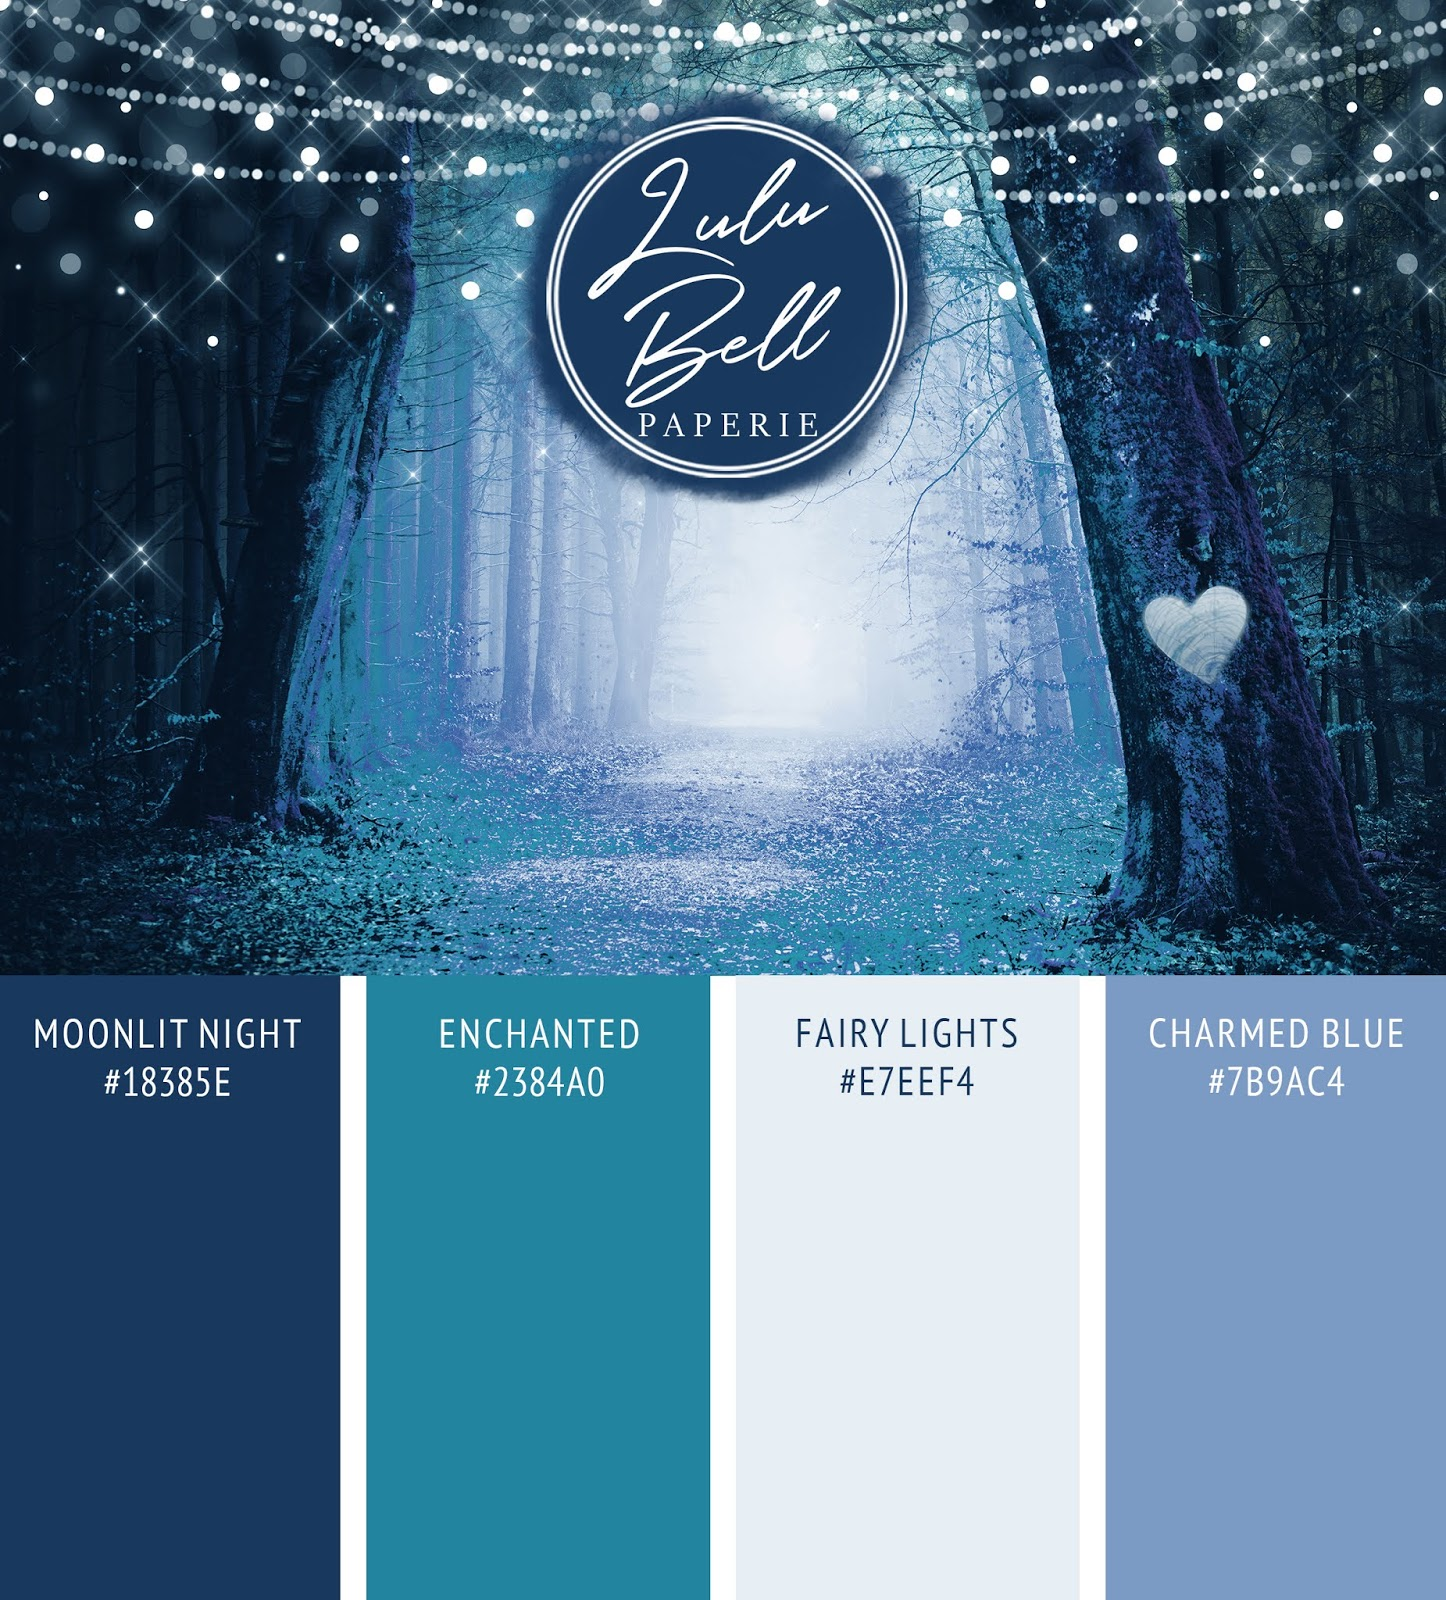 Enchanted Forest Wedding Color Palette Card with Hex Color Codes | Fairy Wings Blue, Charmed Dusty Blue, Moonlit Night Navy, and Enchanted Teal